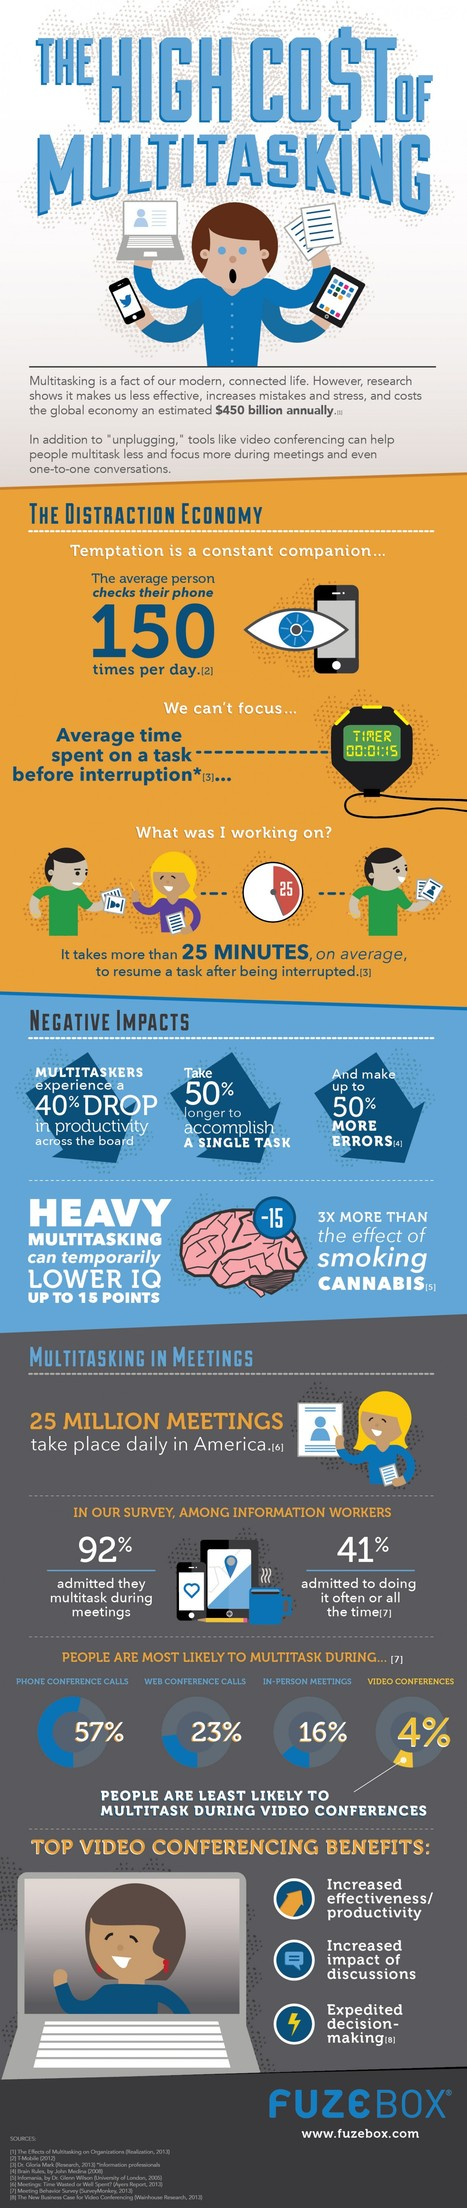 The High Cost of Multitasking - Infographic | online supervision of research | Scoop.it